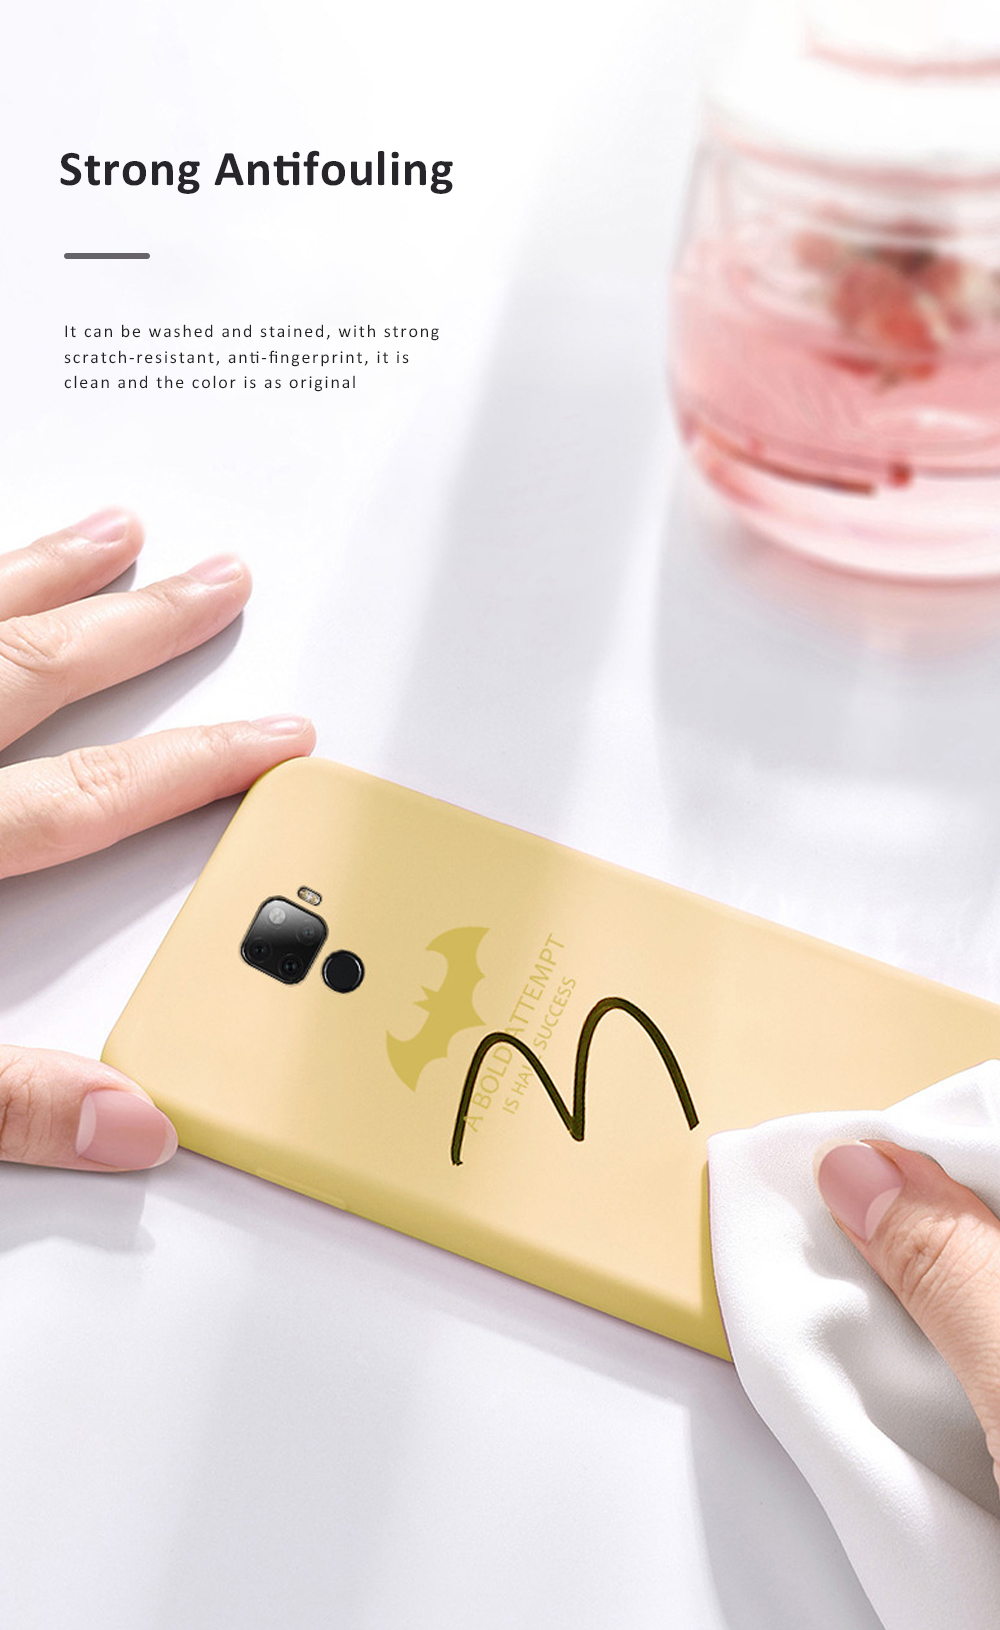 Creative Cool Bat Man Pc Liquid Silicone Mobile Phone Case Shockproof Cover Ultra Thin Back Shell For Huawei Nova 5 Pro 5i Pro Skin Protecter 3